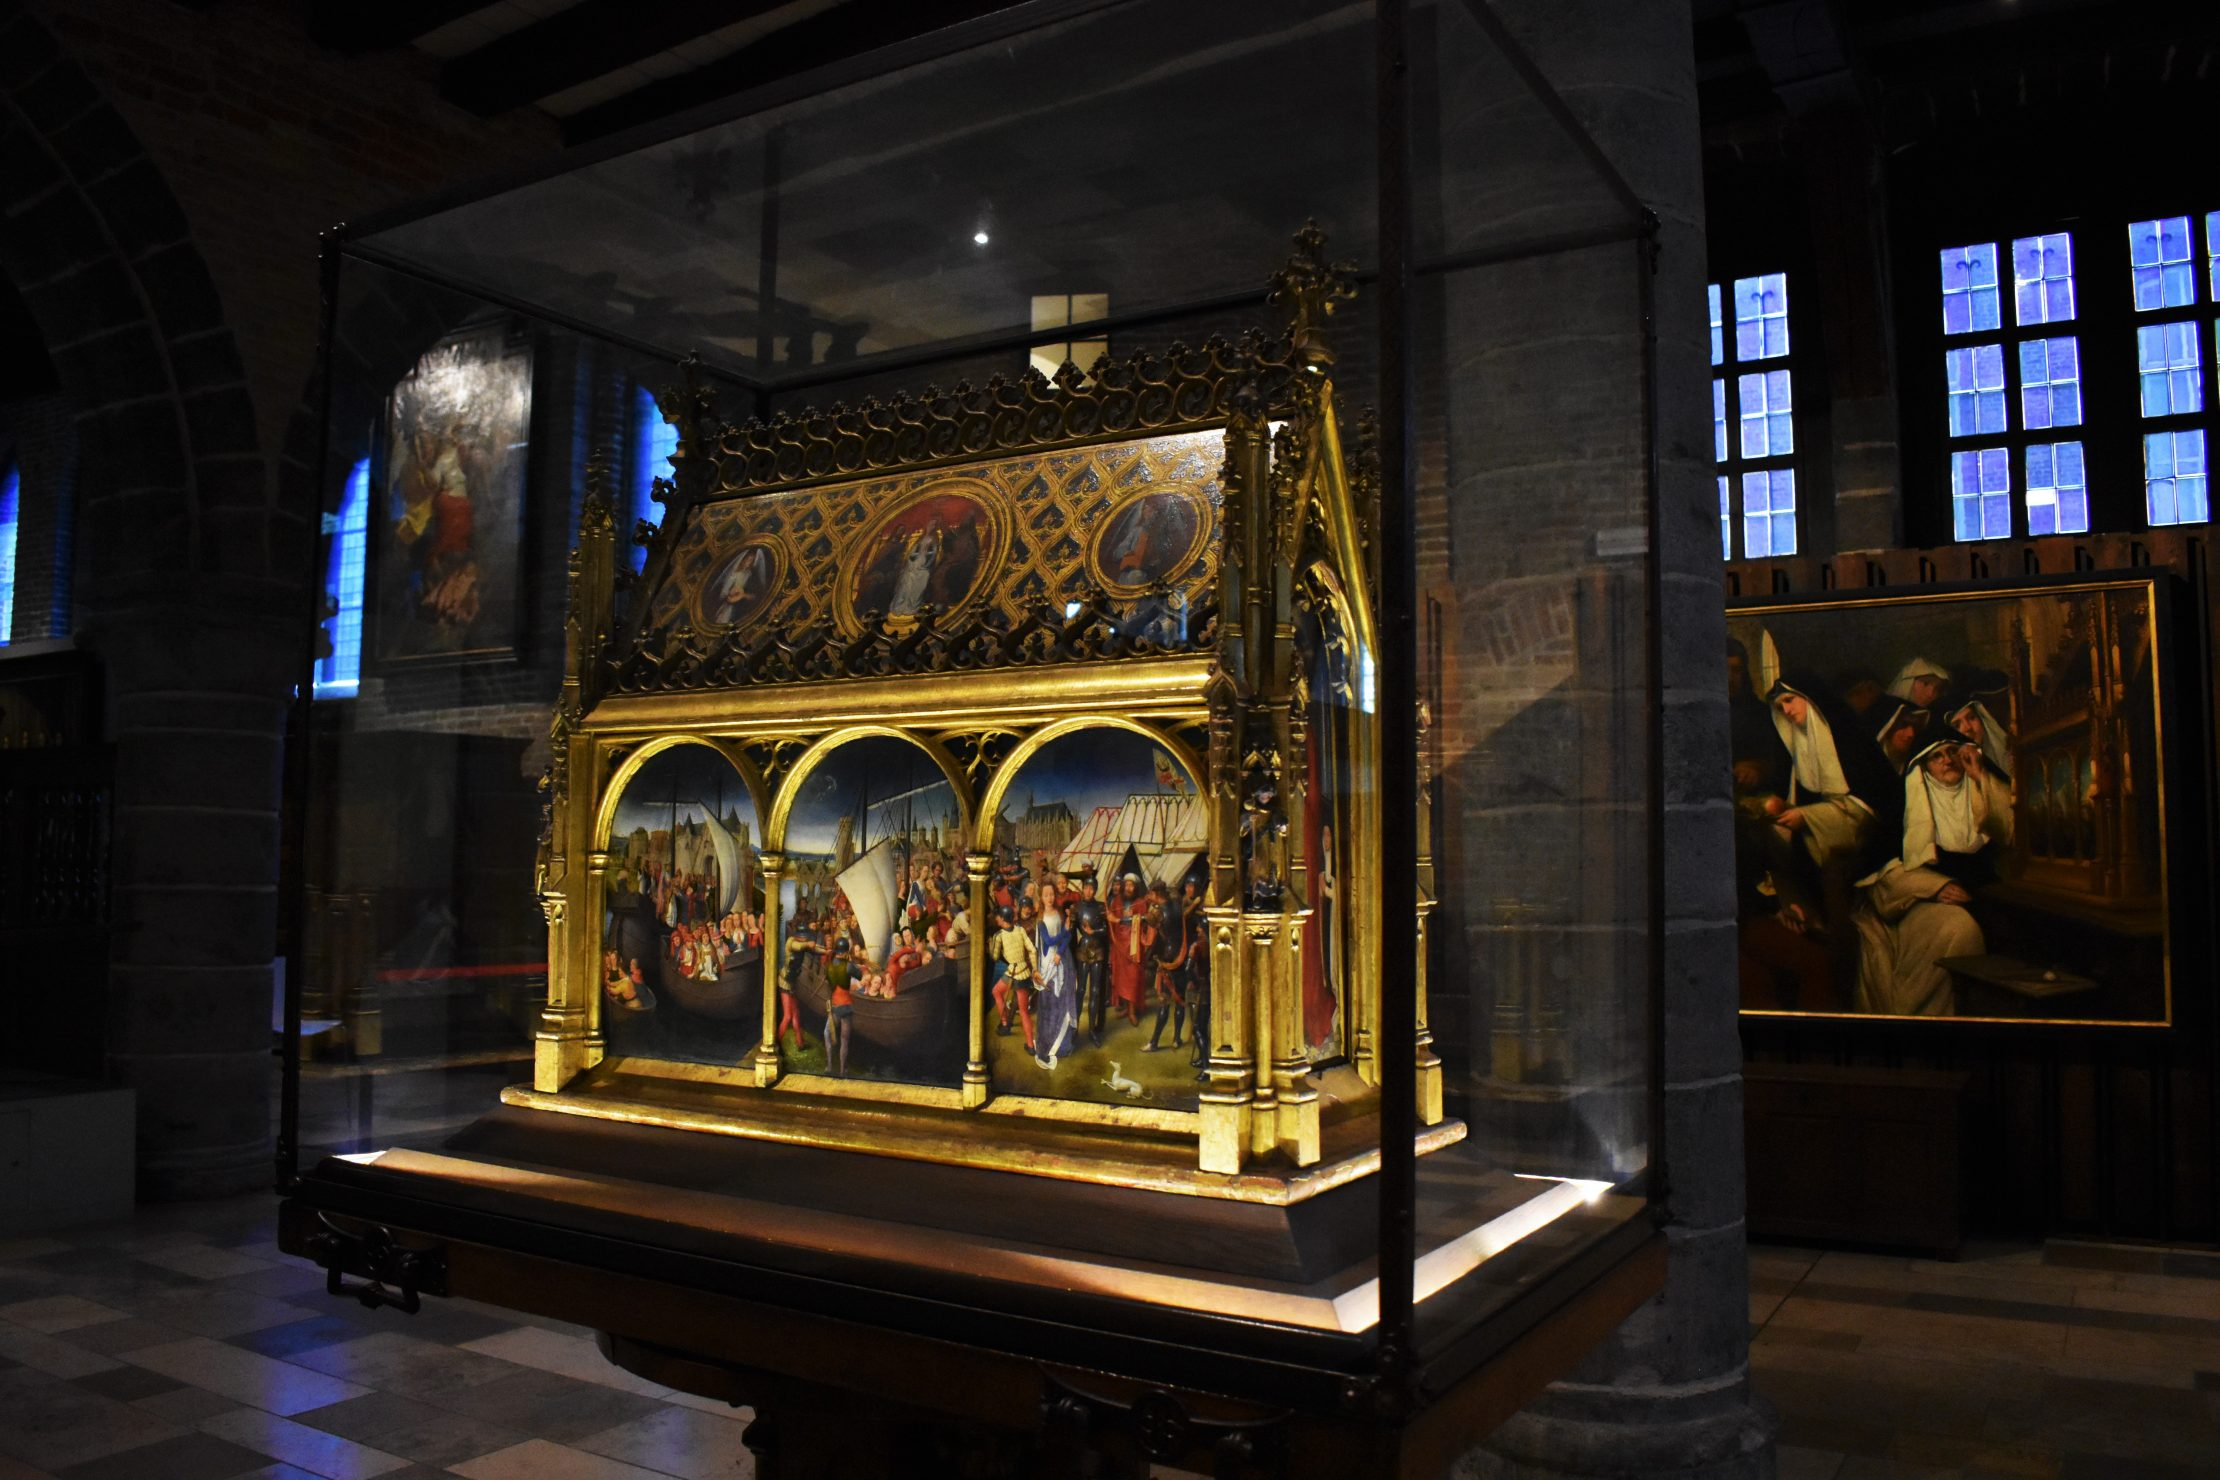 Masterpiece of Hans Memling - Shrine of St Ursula in Sint-Janshospitaal